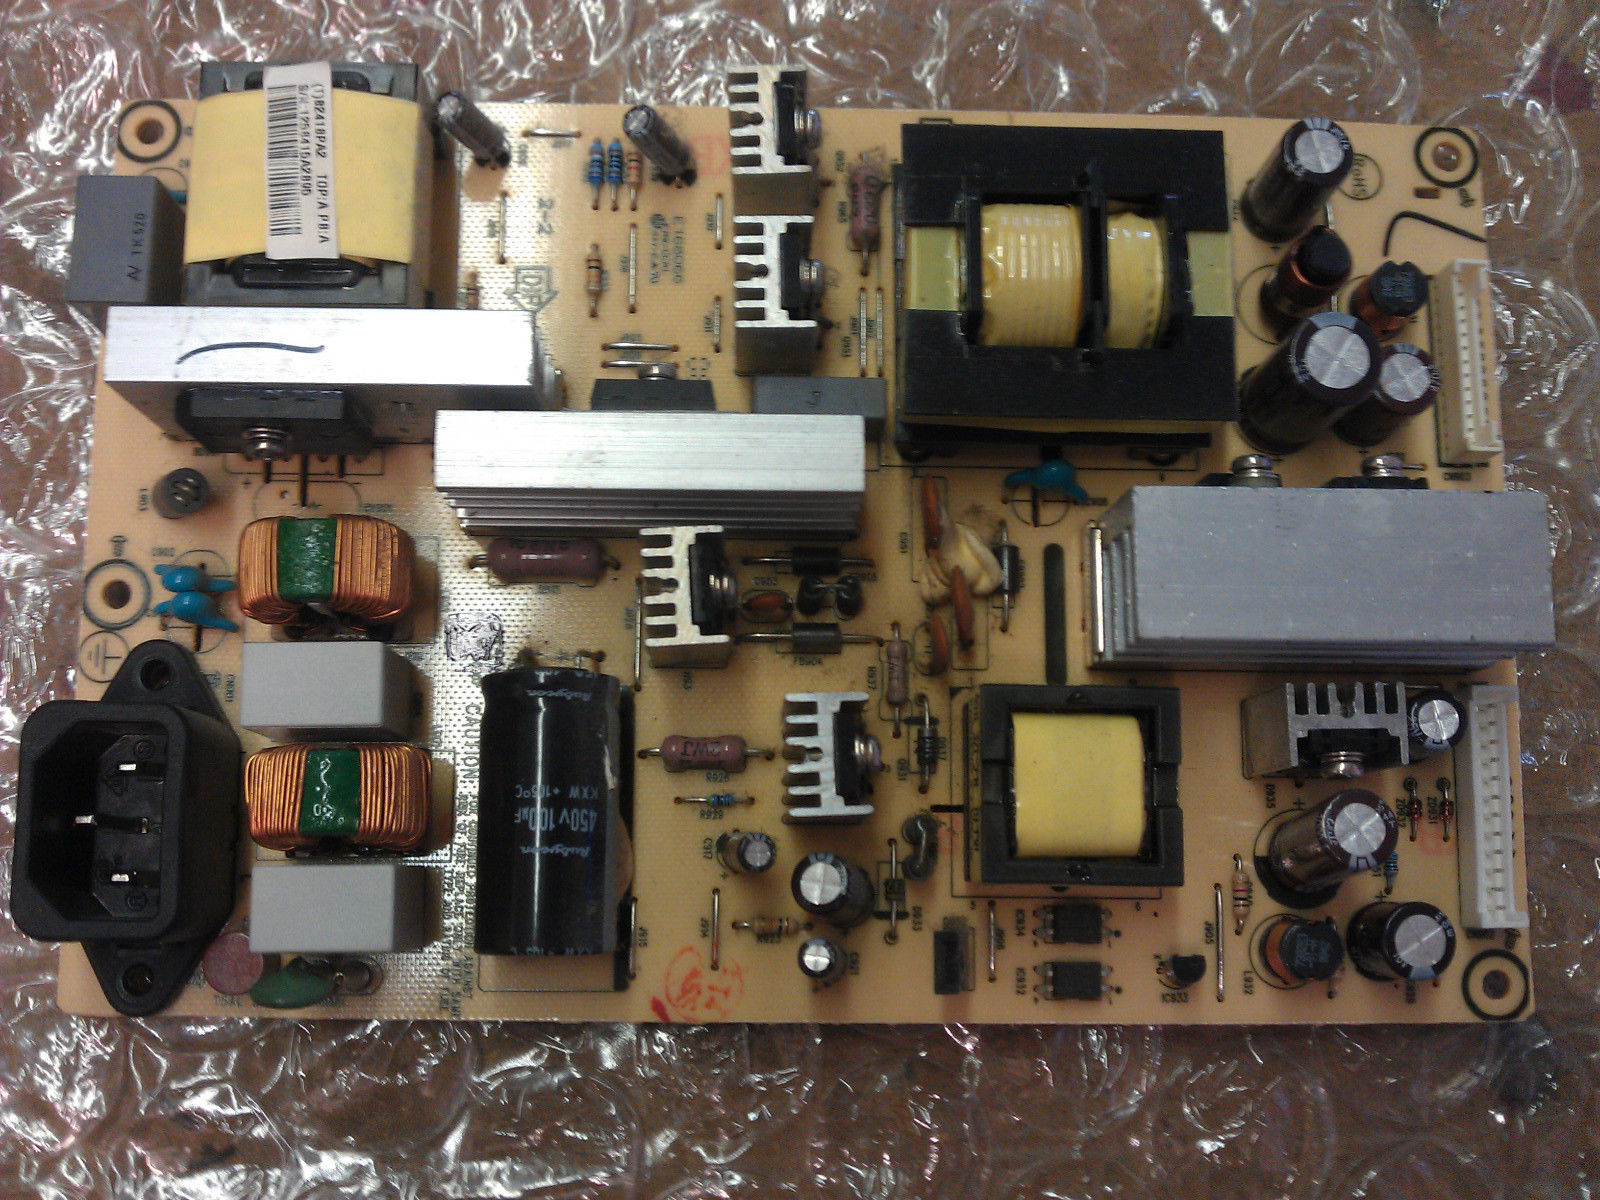 ADPC8241PA2 715T2804-3 Power Supply PCB From Westinghouse W3223  LCD TV